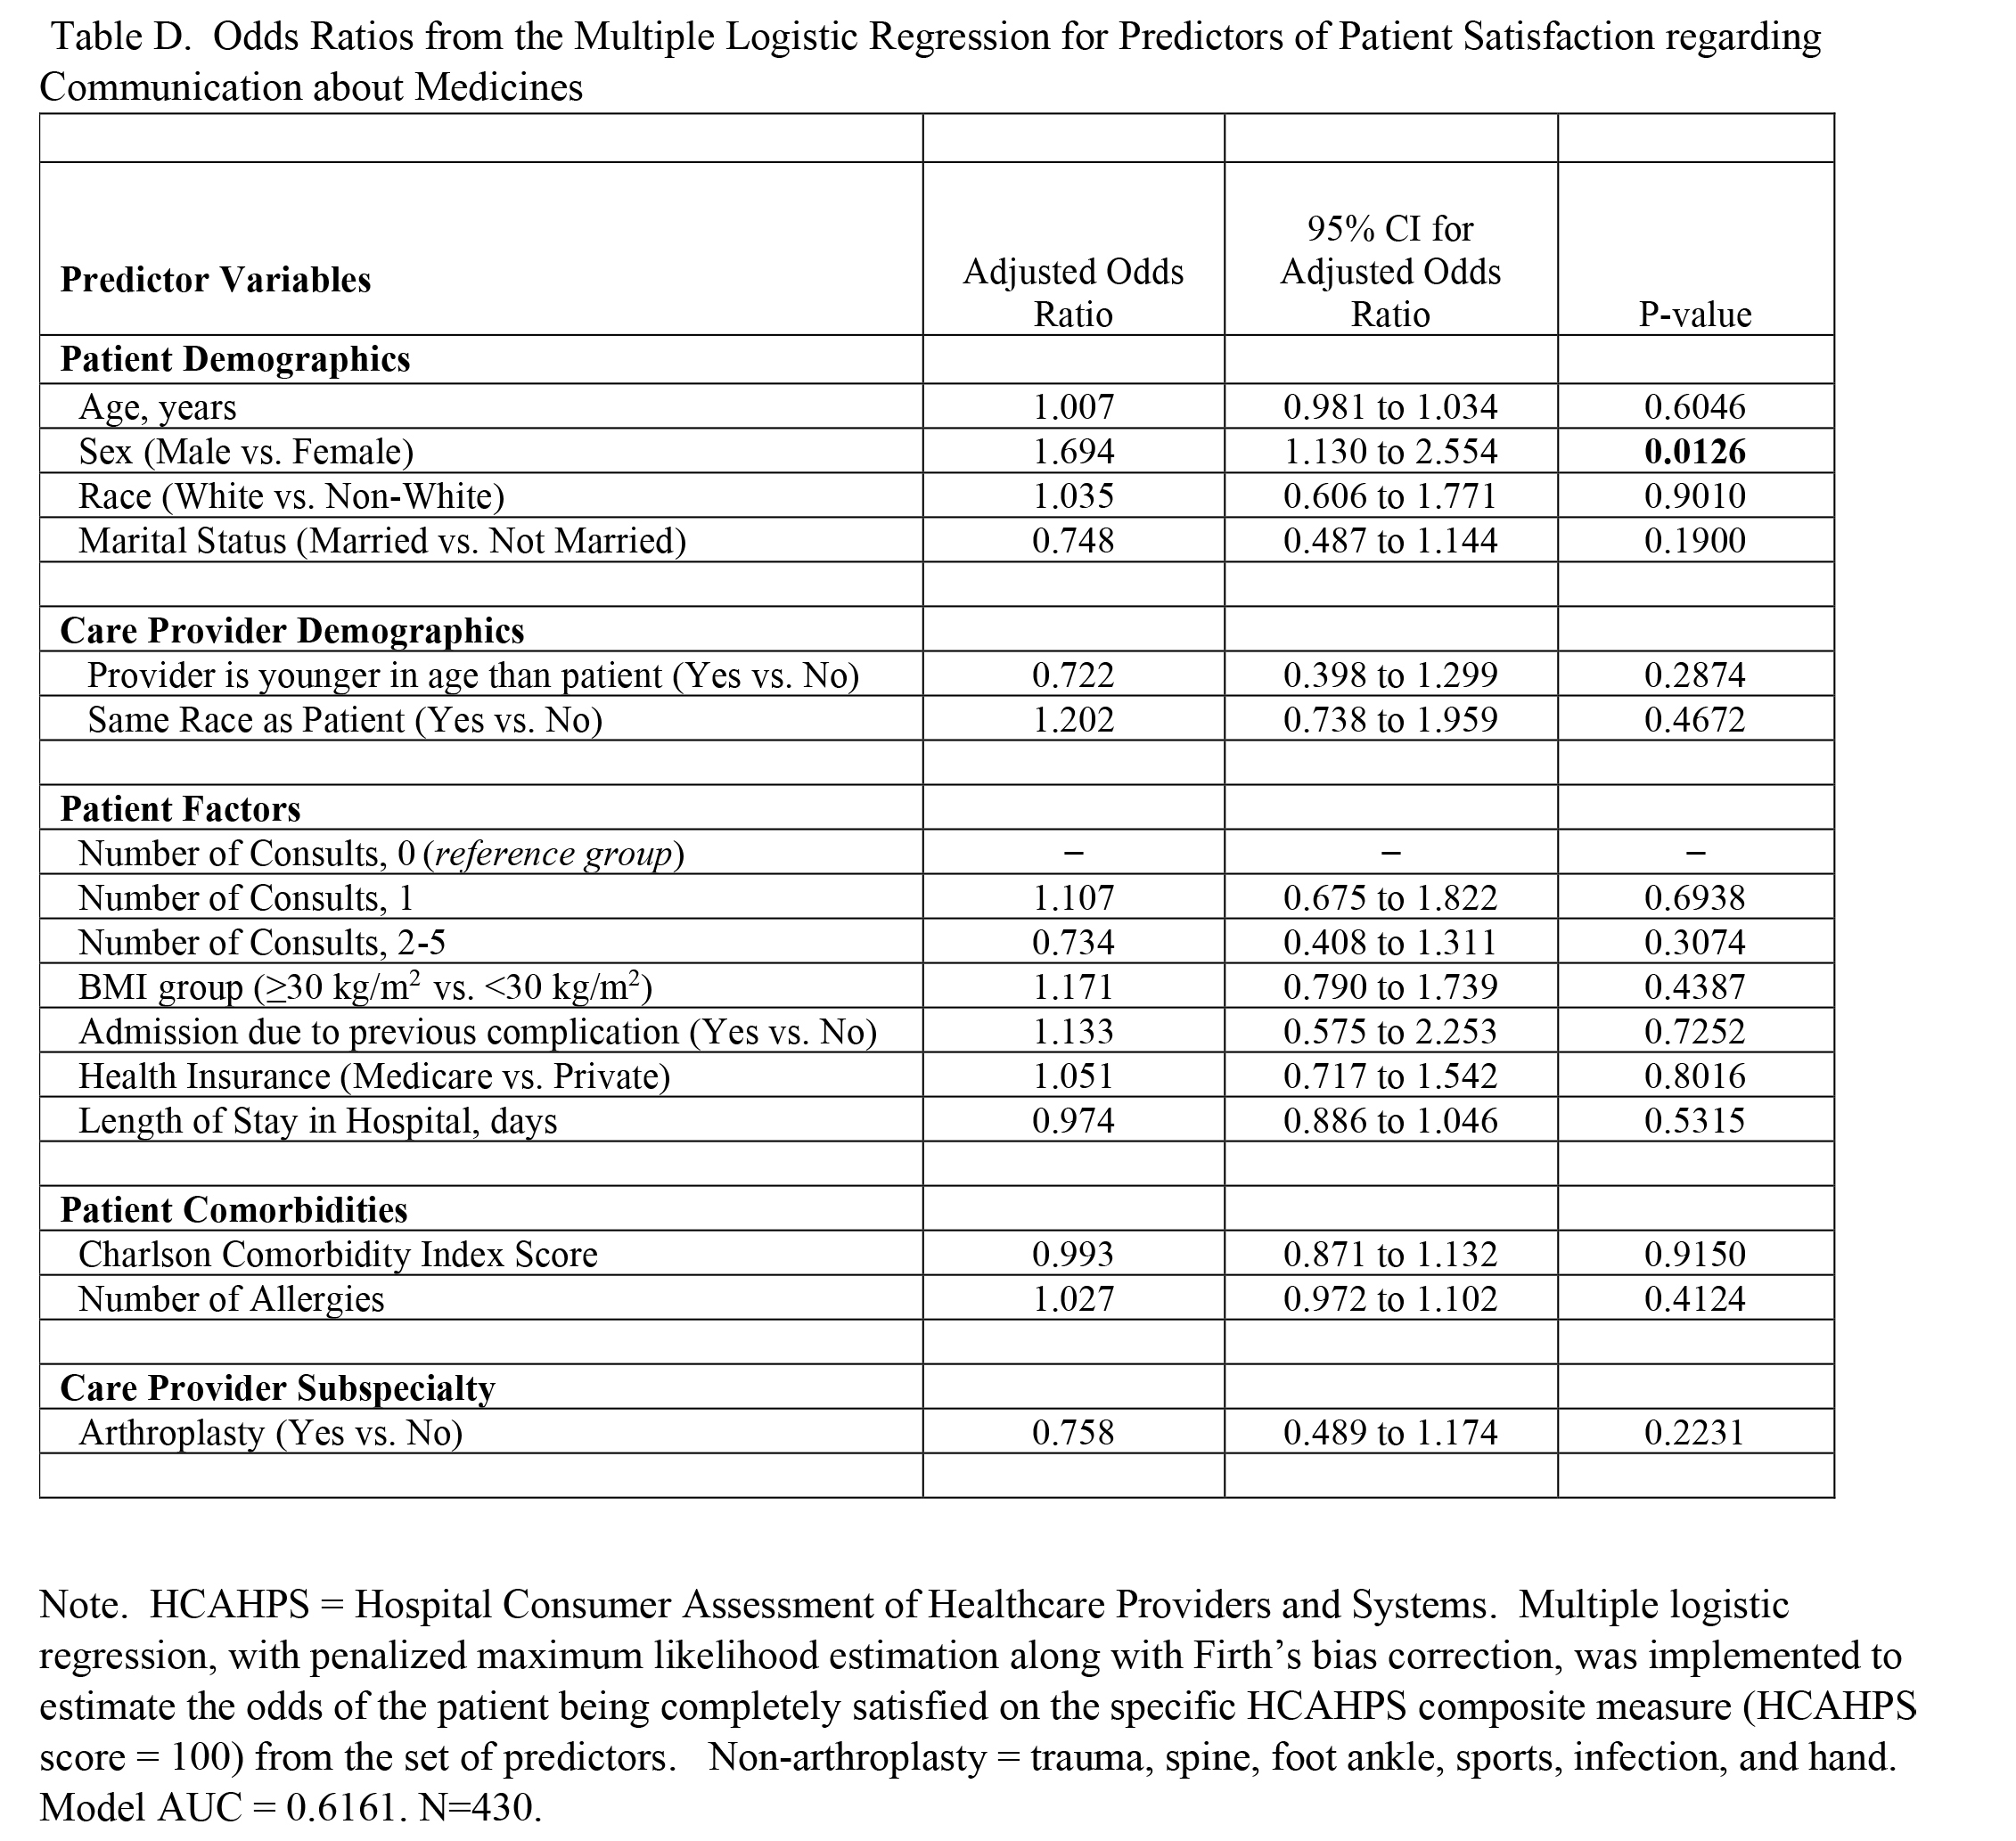 Odds Ratios from the Multiple Logistic Regression for Predictors of Patient Satisfaction regarding Communication about Medicines